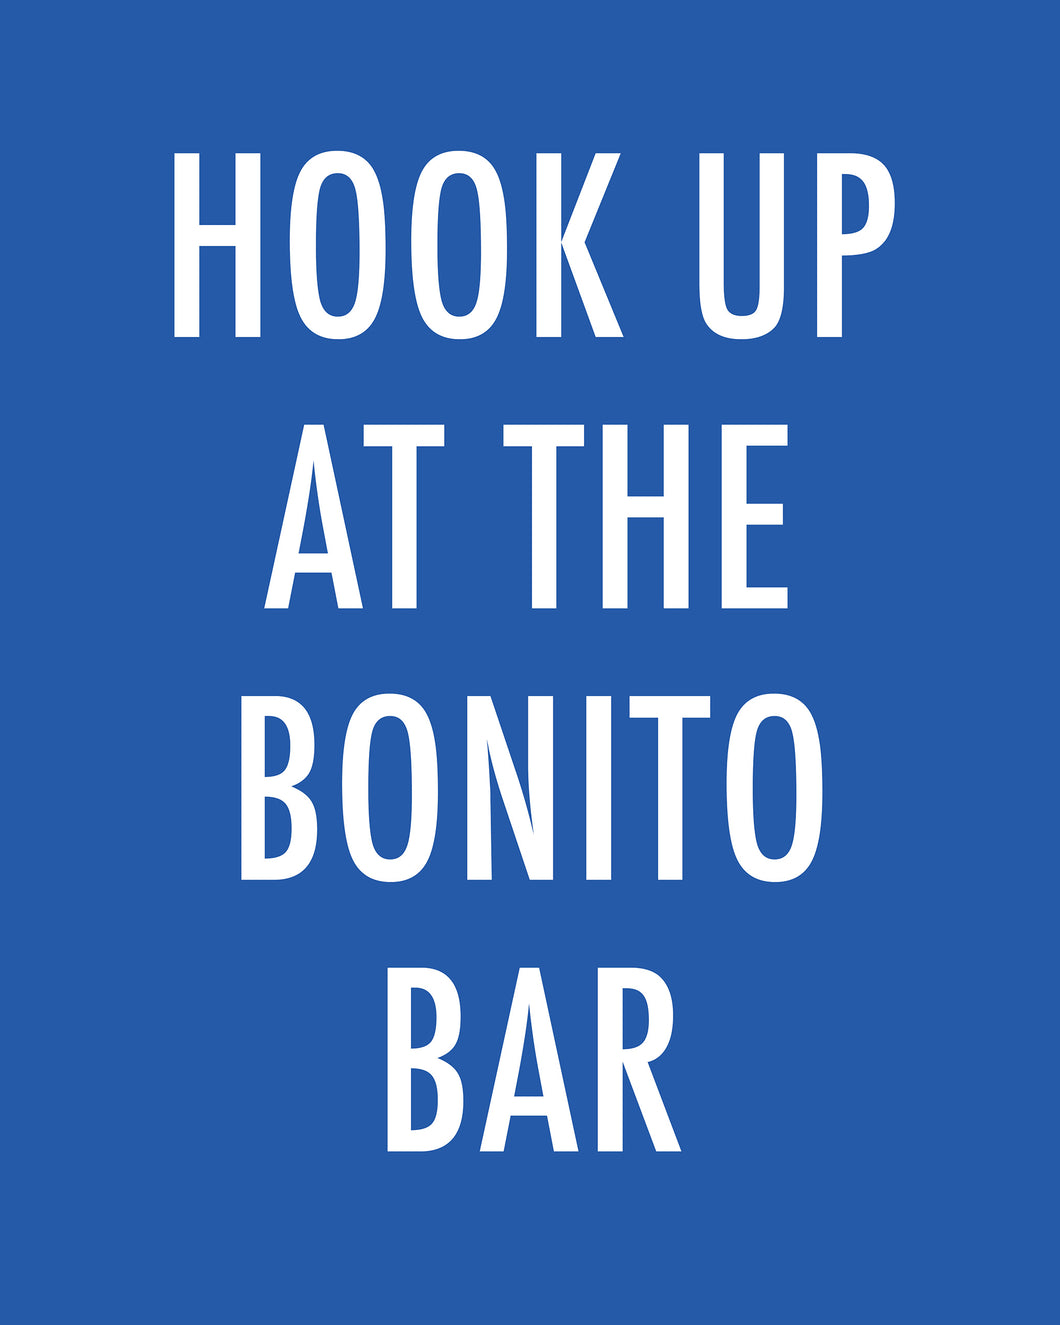 HOOK UP AT THE BONITO BAR - Color Pop Print